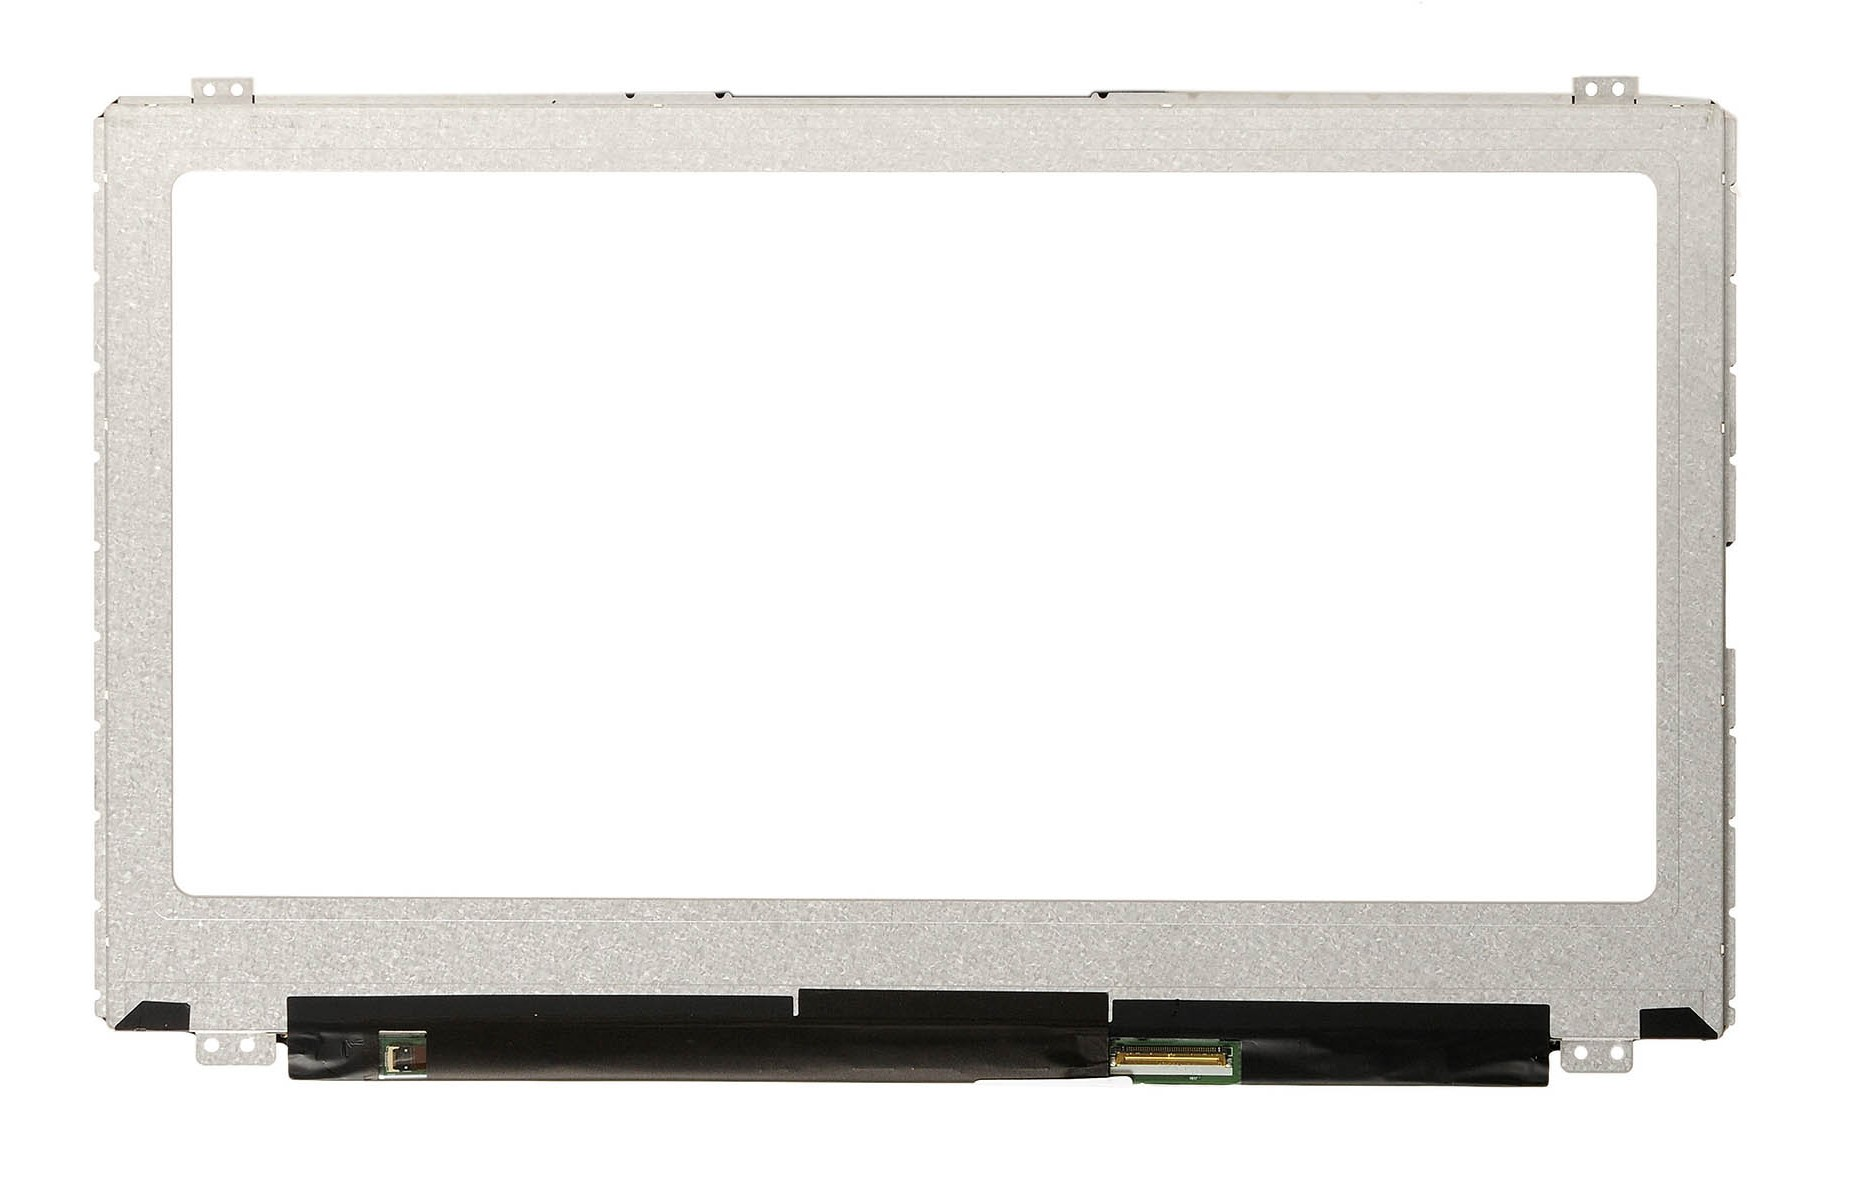 "15.6/"" LED LCD Touch Screen For Acer V3-572PG Laptop B156XTT01.1 Replacement"